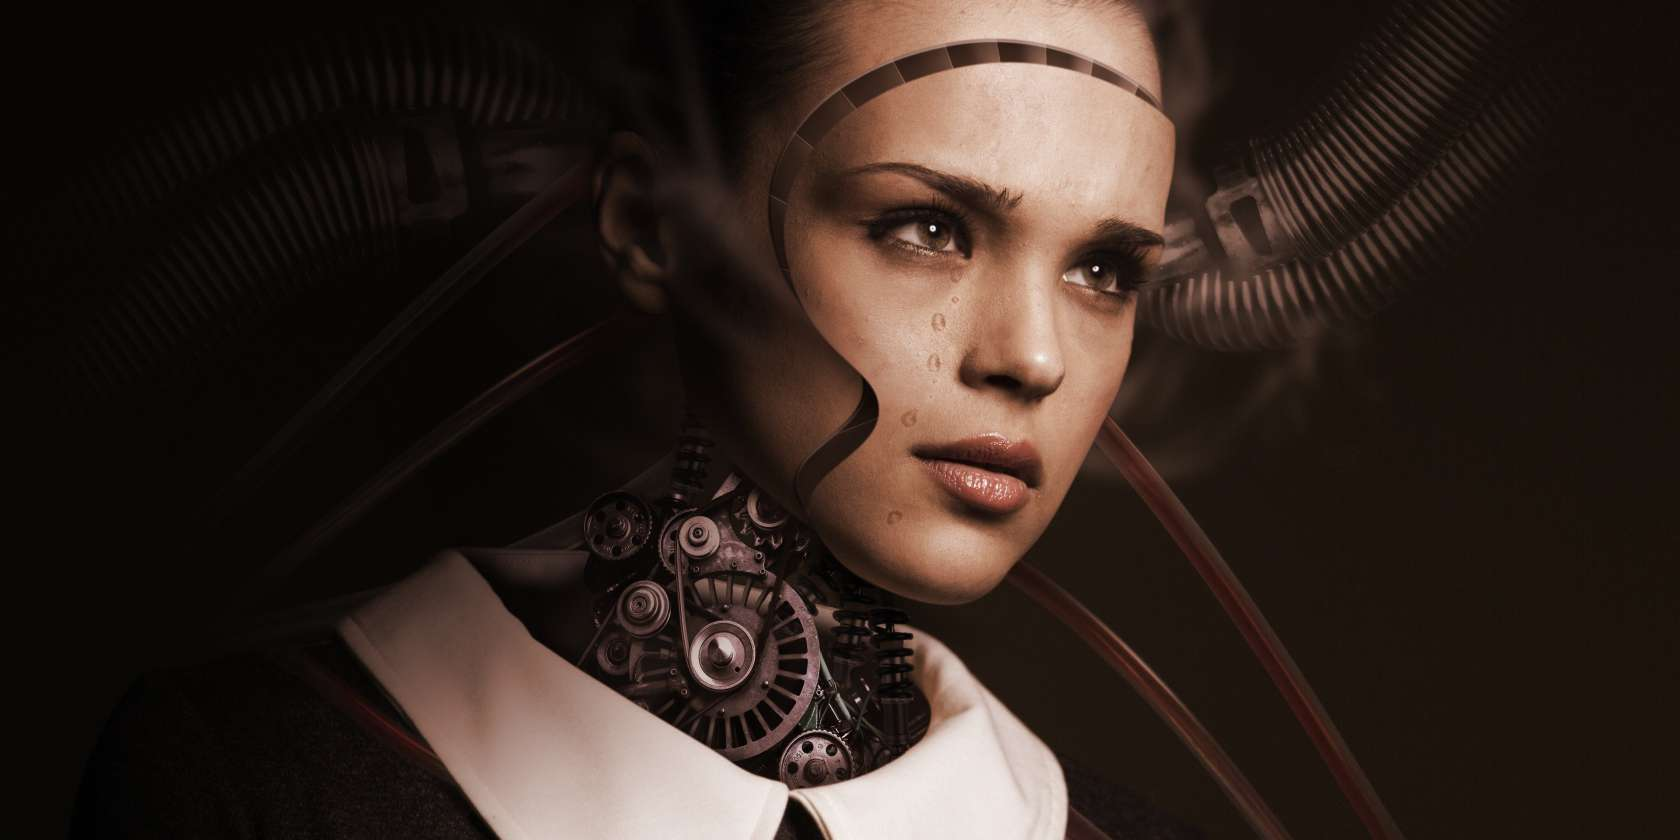 Importance to have a Physical Body for Artificial Intelligence